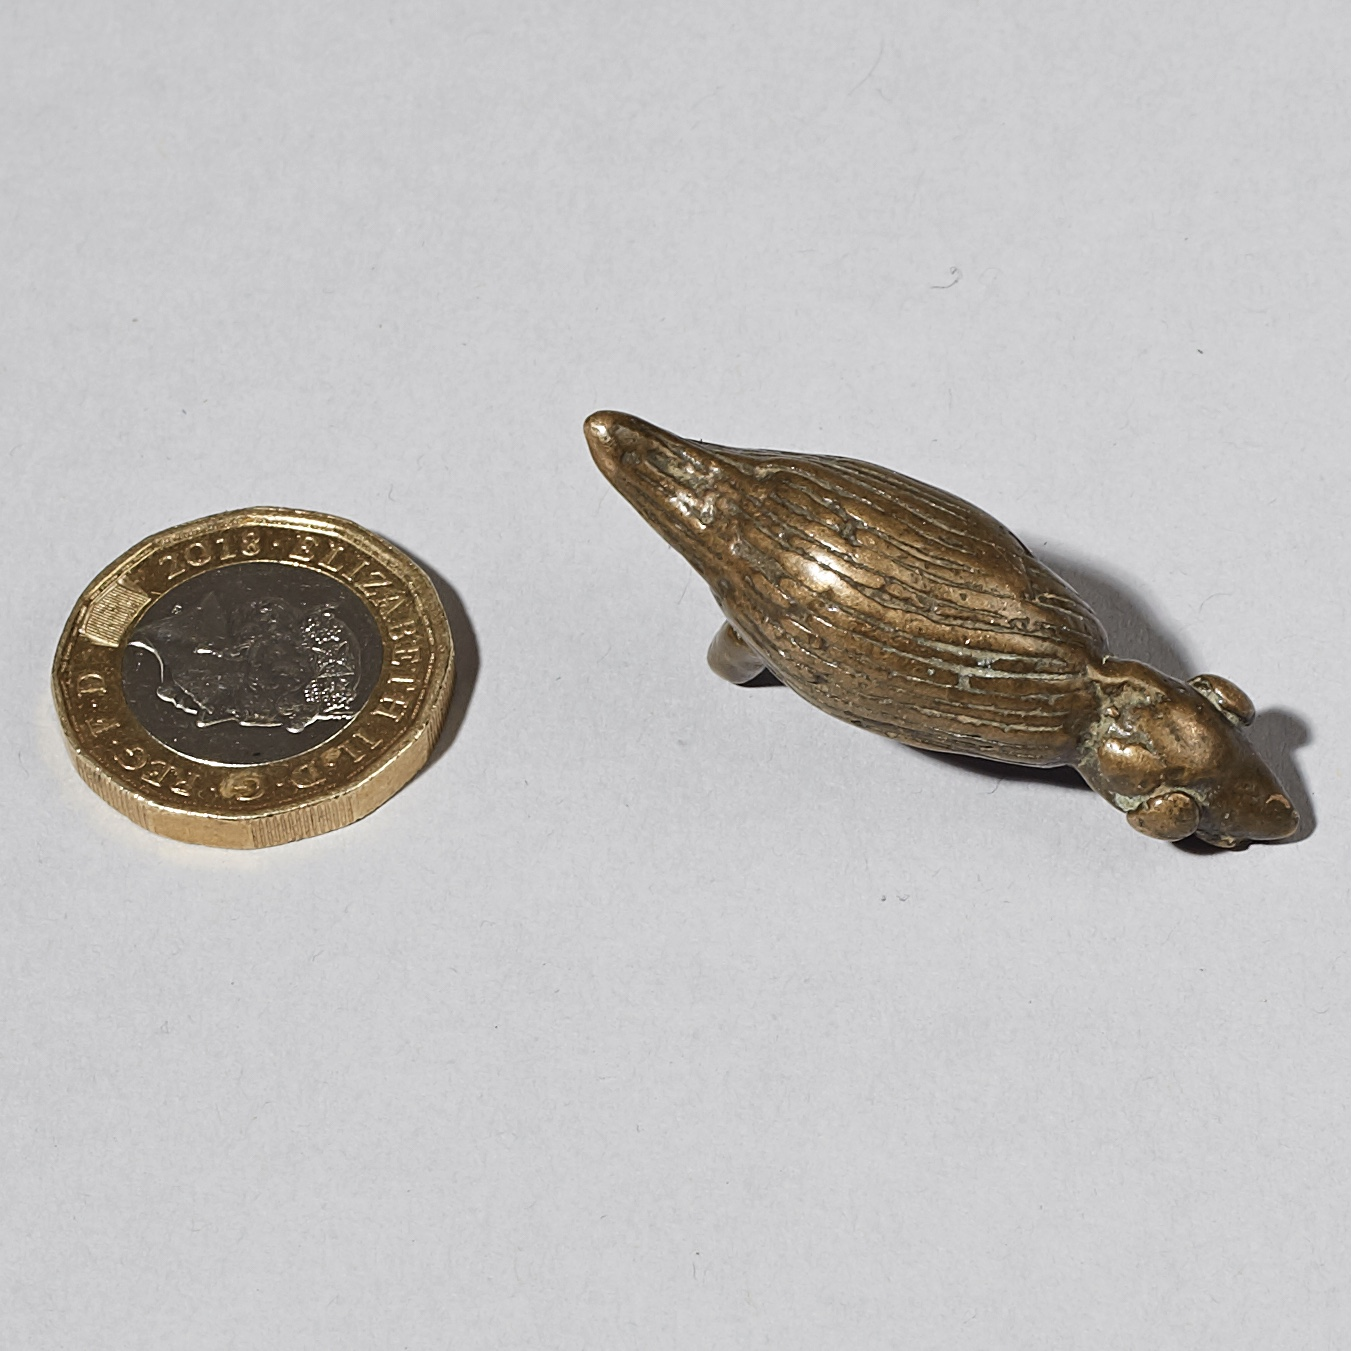 AN UNUSUAL ANIMAL 19THC GOLD WEIGHT FROM THE AKAN REGION W AFRICA( No 2983 )